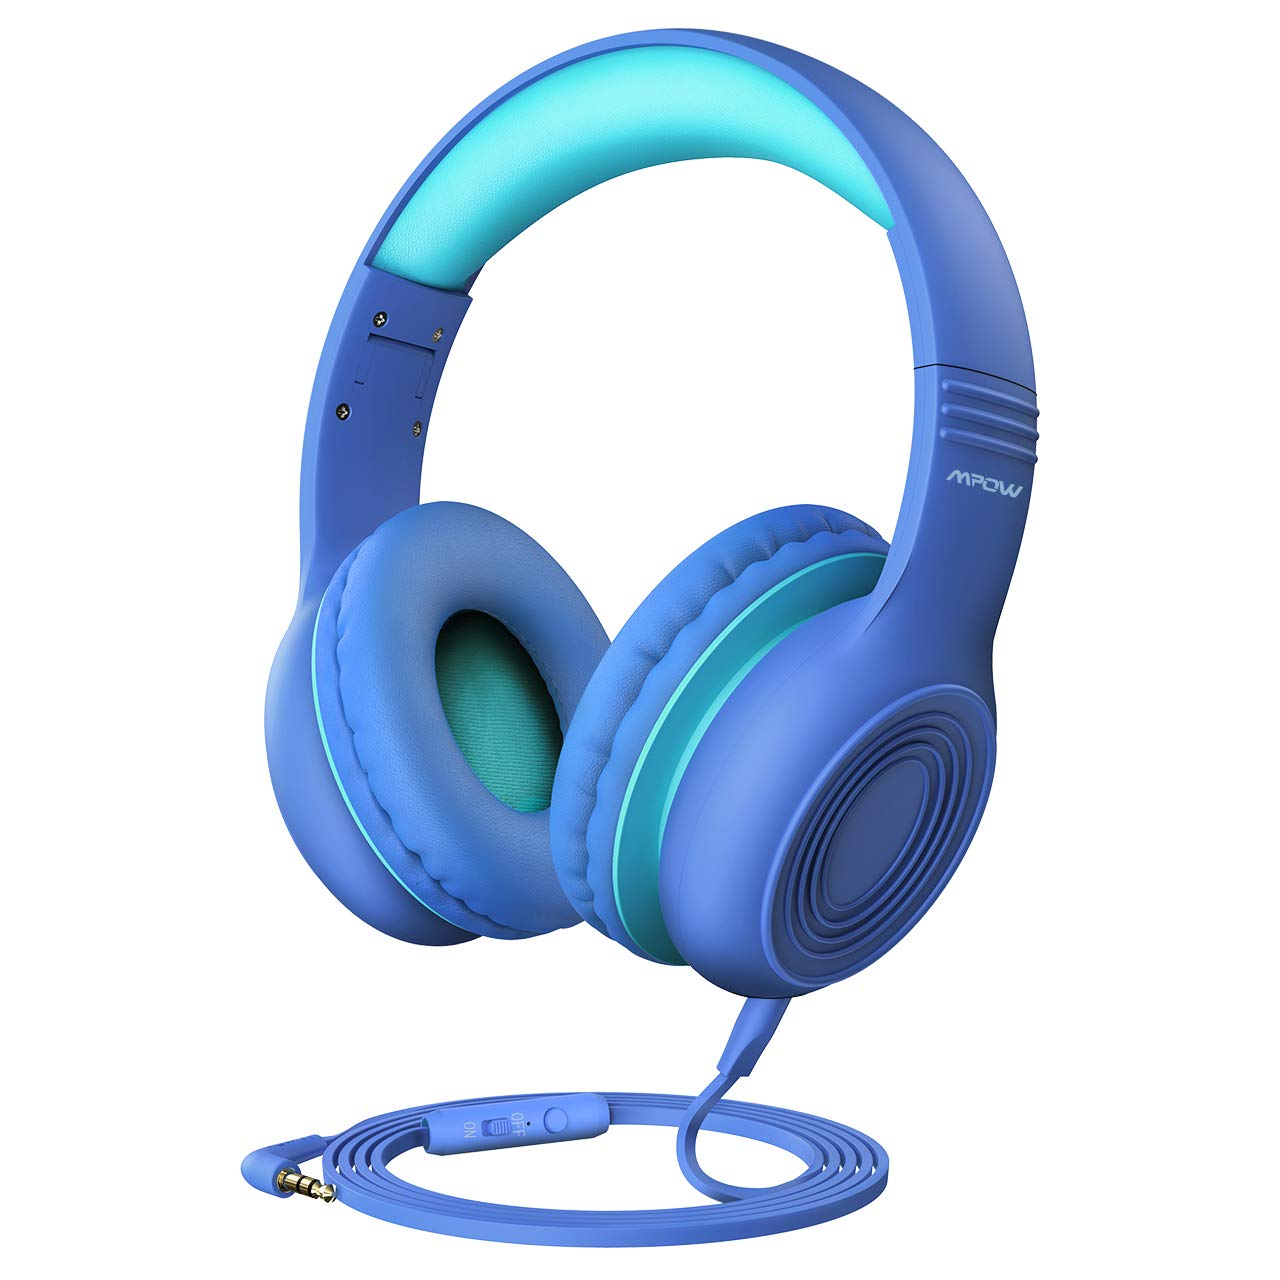 Mpow CH6 Kids Headphones, Volume Limited Over Ear Kids Headset with 3.5mm Audio Jack for Children Boys Girls, Wired Headphone Safe Children Headset for Smartphone, Tablets, laptops, Computers, mp3/4